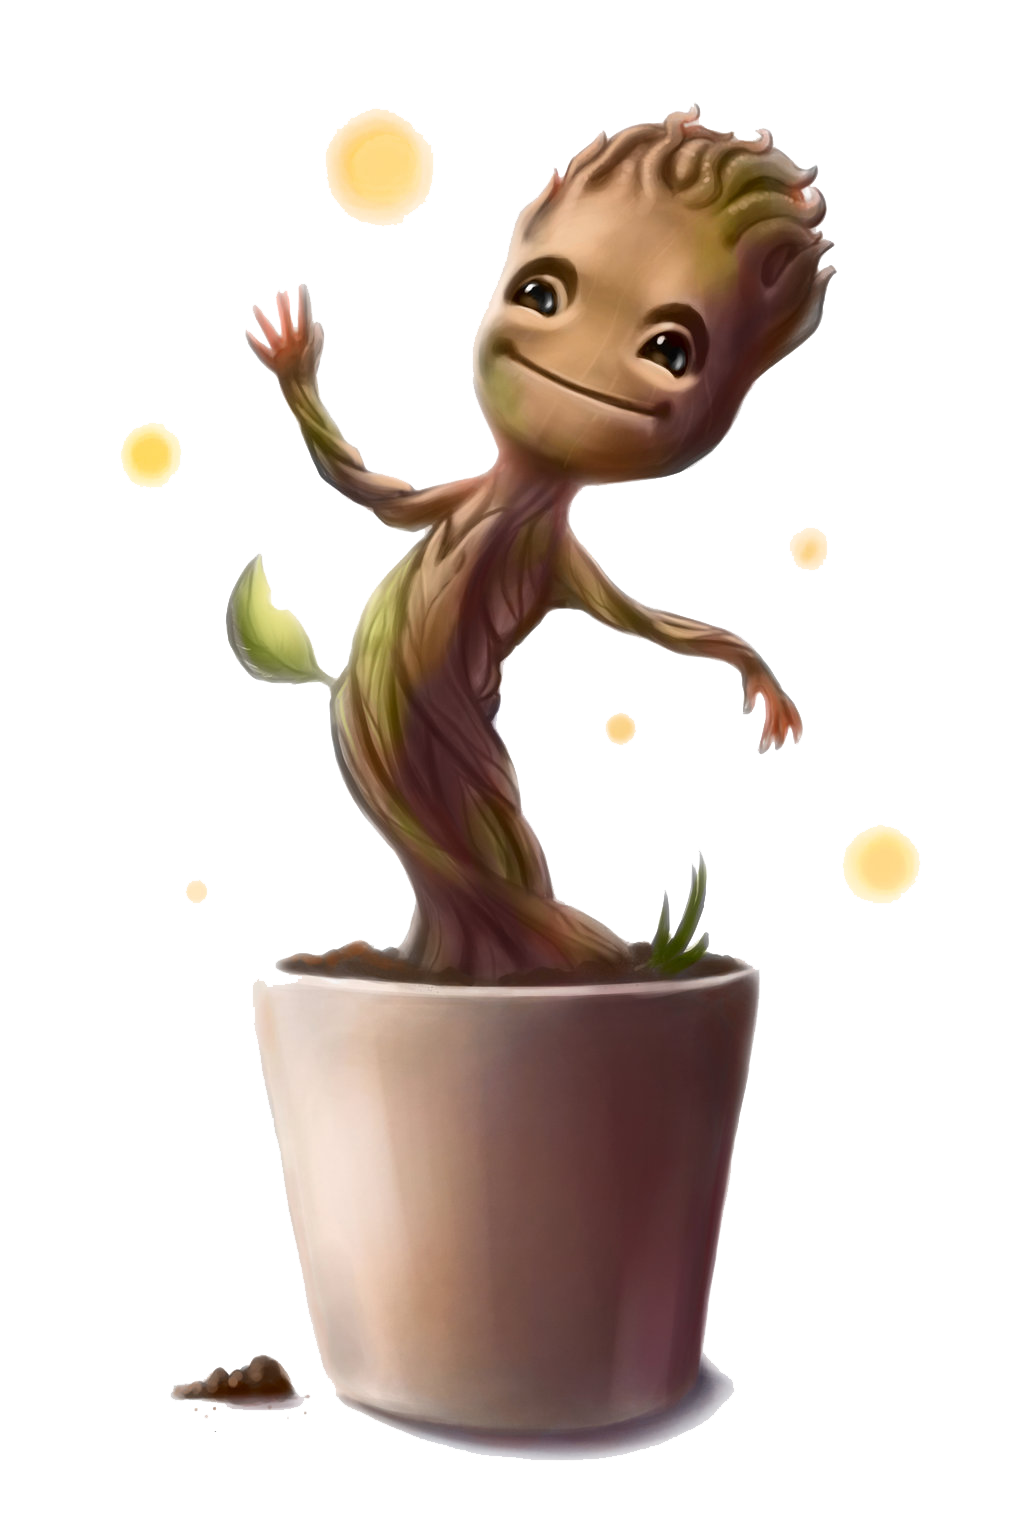 Download Baby Groot Transparent Image HQ PNG Image.